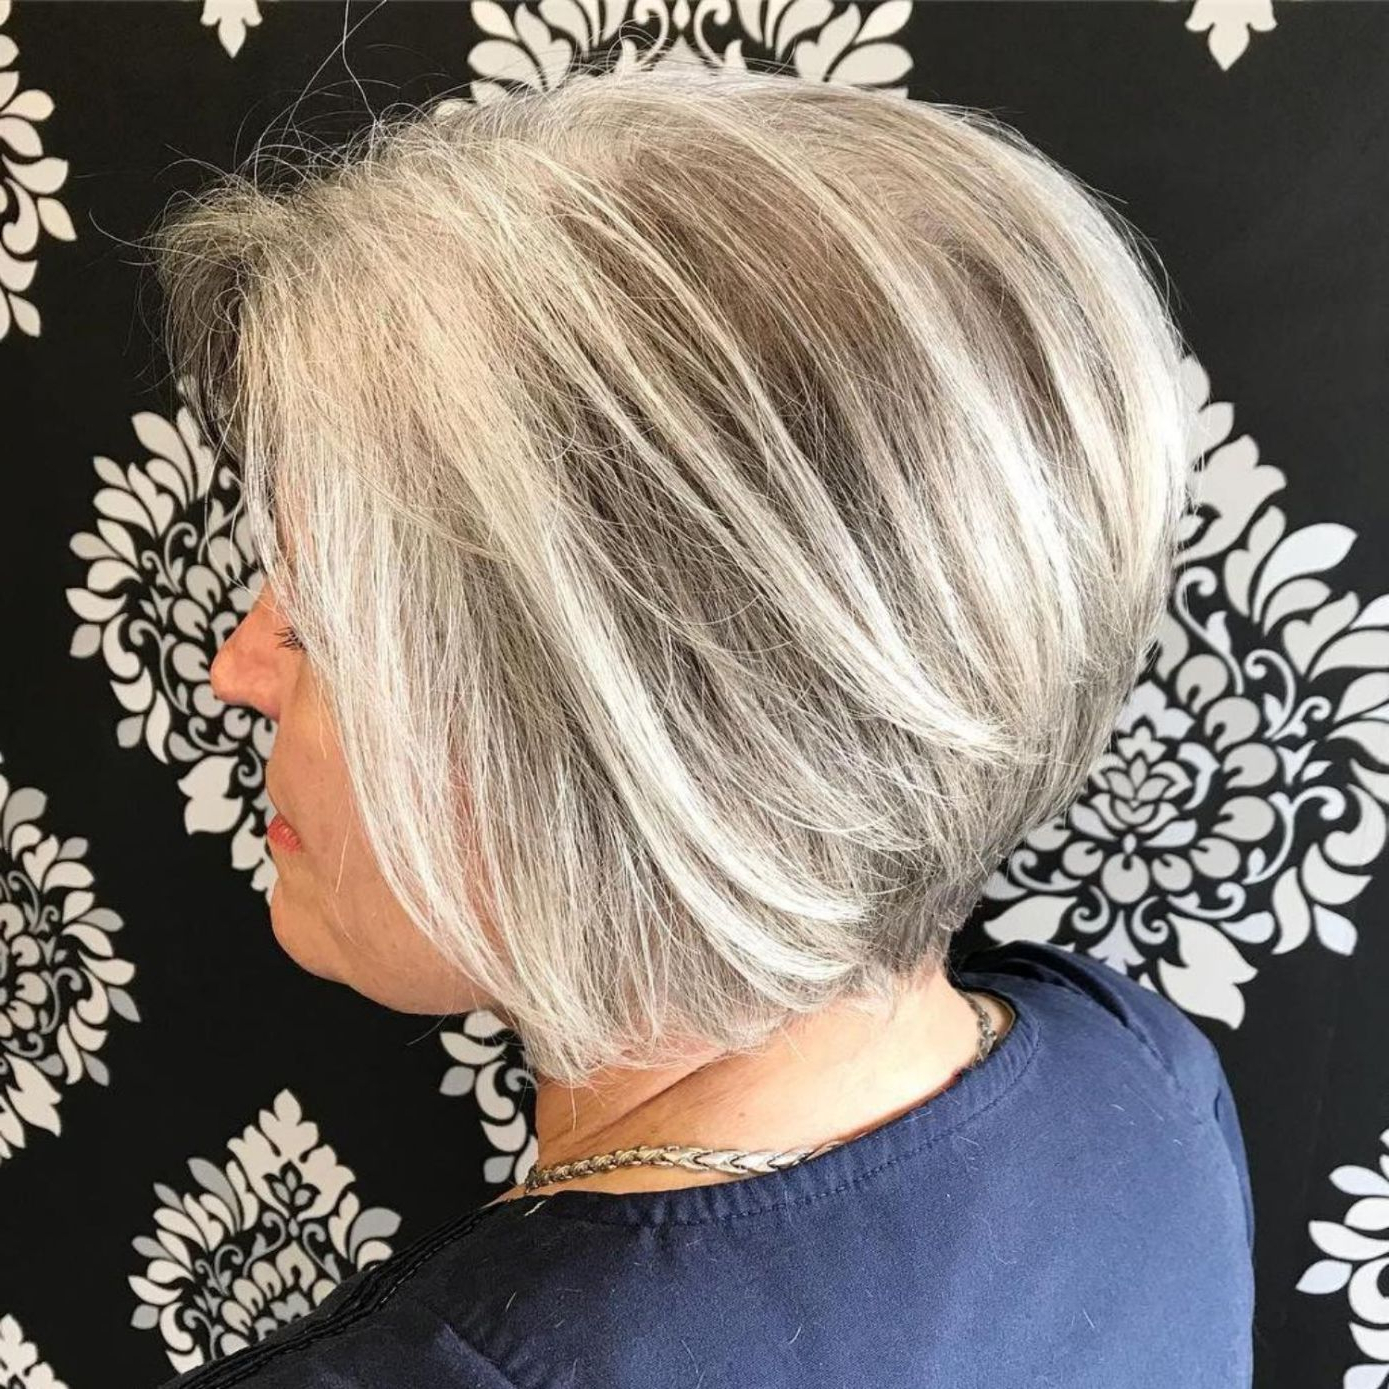 60 Best Hairstyles And Haircuts For Women Over 60 To Suit Any Taste Intended For Silver And Sophisticated Hairstyles (View 3 of 20)